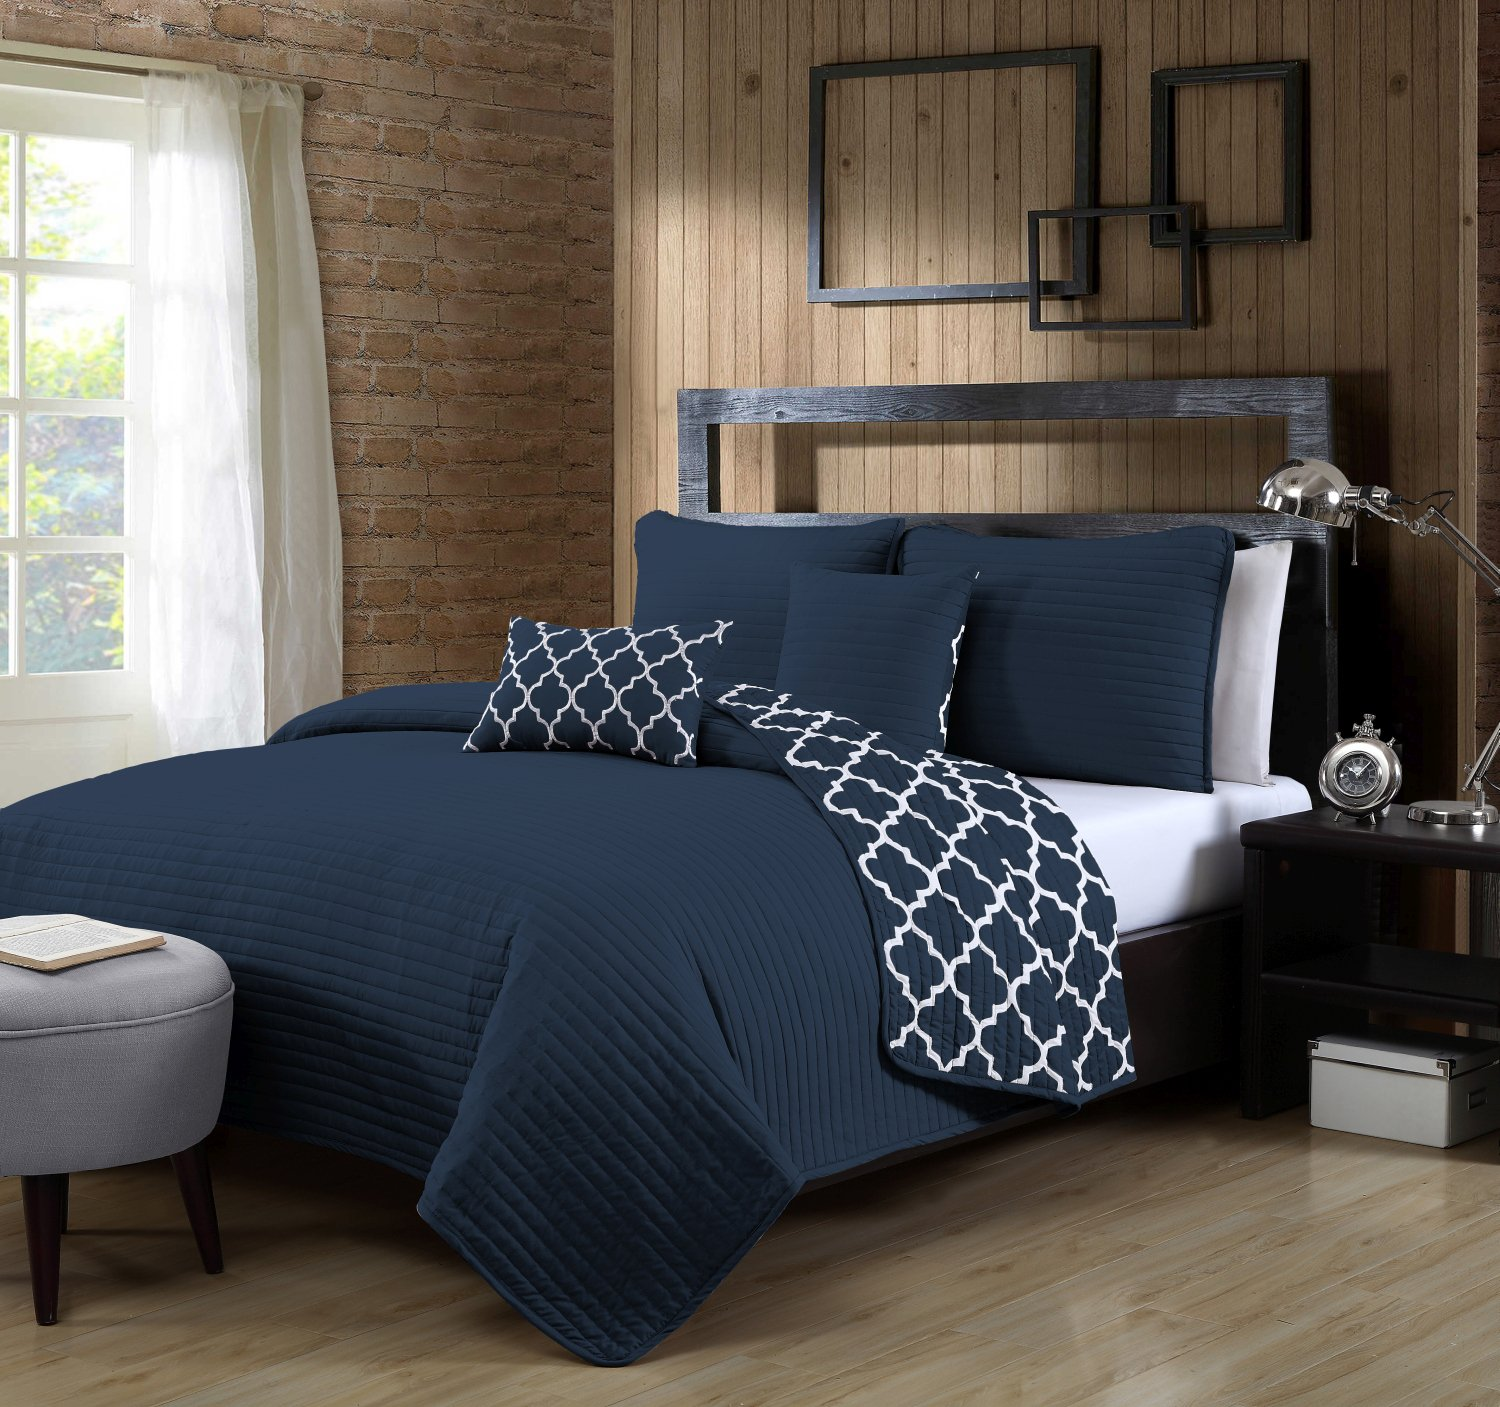 Geneva Home Fashion 5 Piece Griffin Quilt Set, Queen, Navy